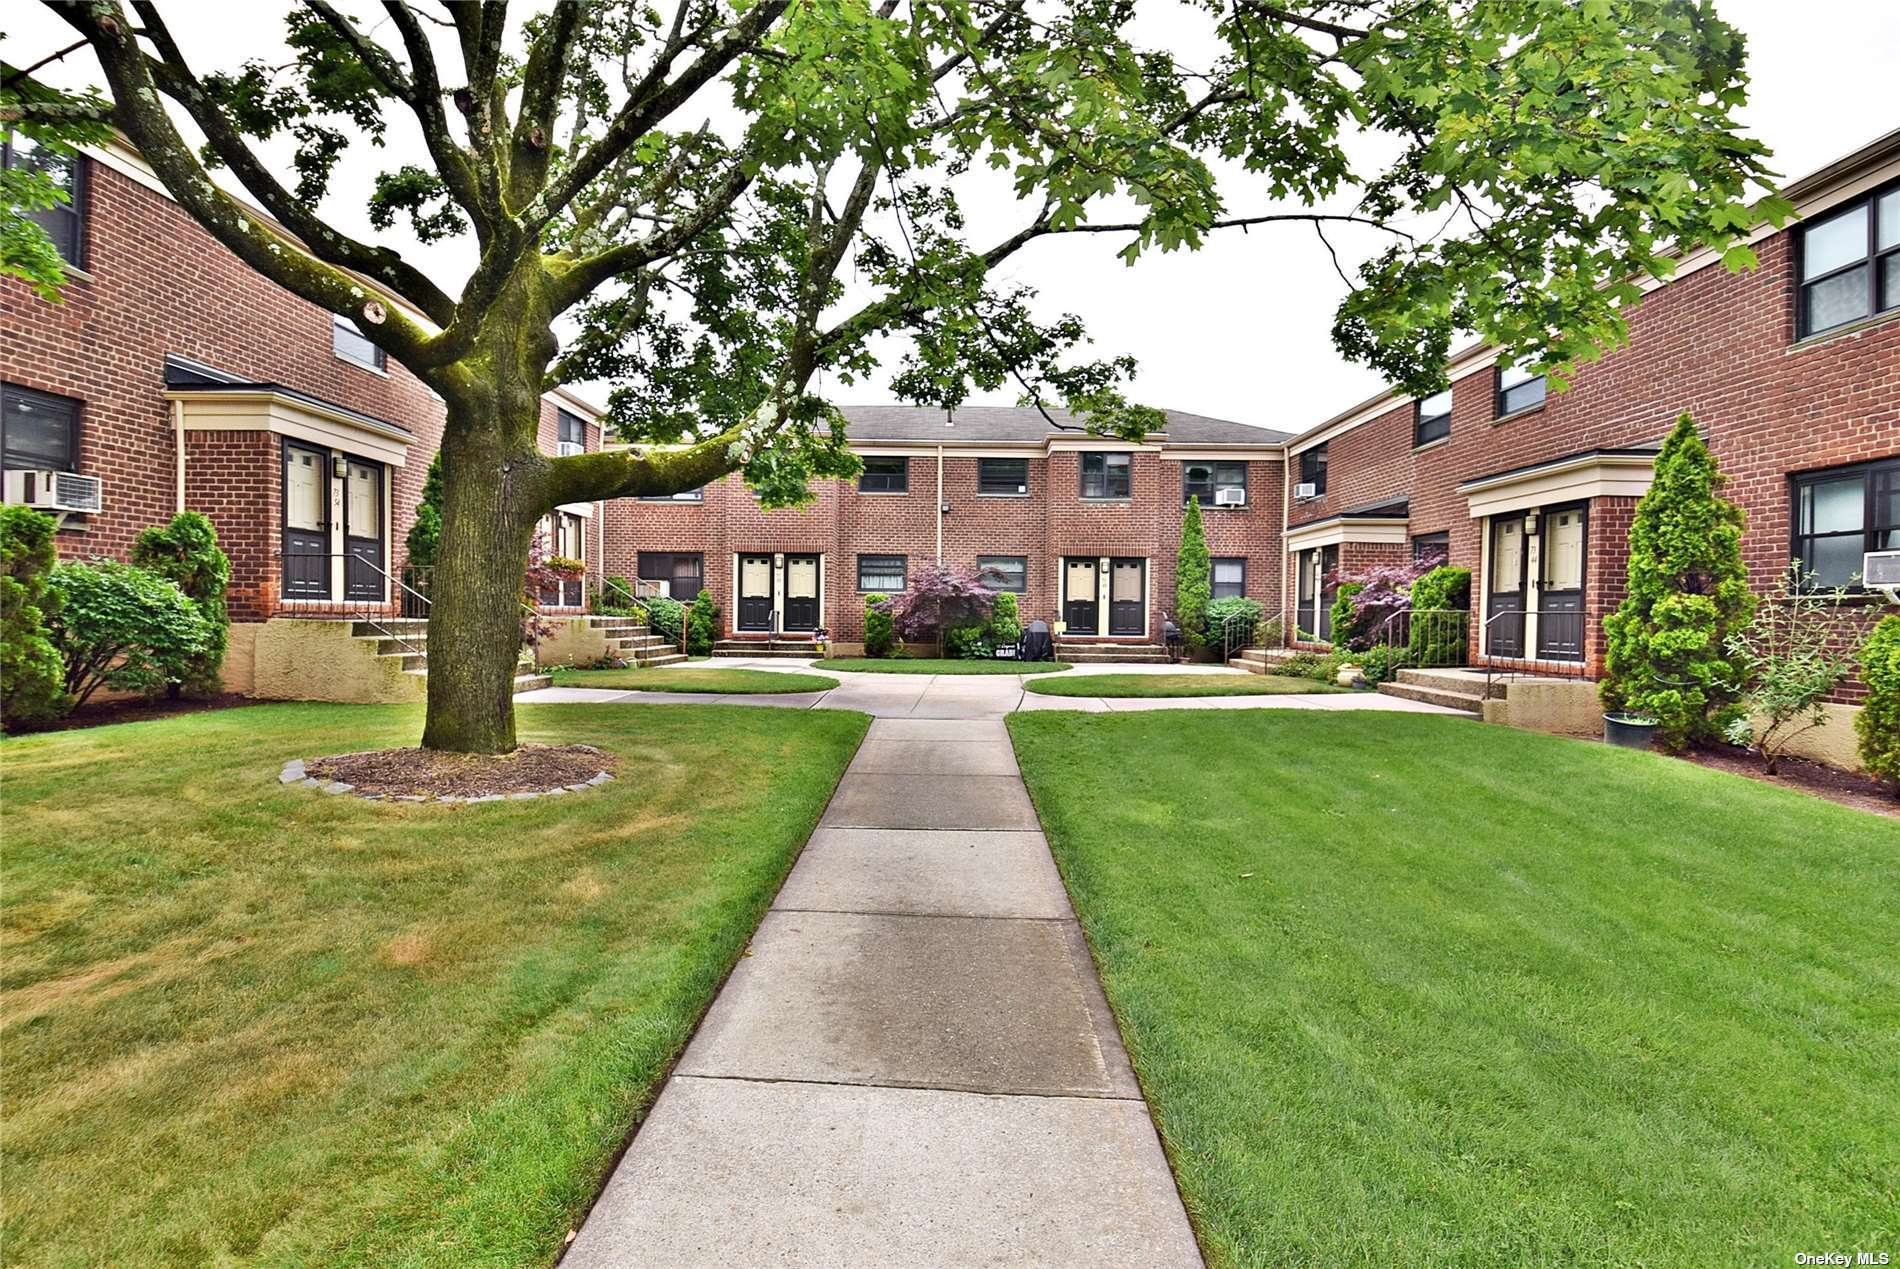 Nice 2 Bedrooms Lower Unit in Windsor Oaks.  This Unit Features Kitchen, Living Room, Bedroom, Full Bath.  Pet Friendly, across the street from Alley Pond Park.  Close to Shopping, Schools and Transportation.